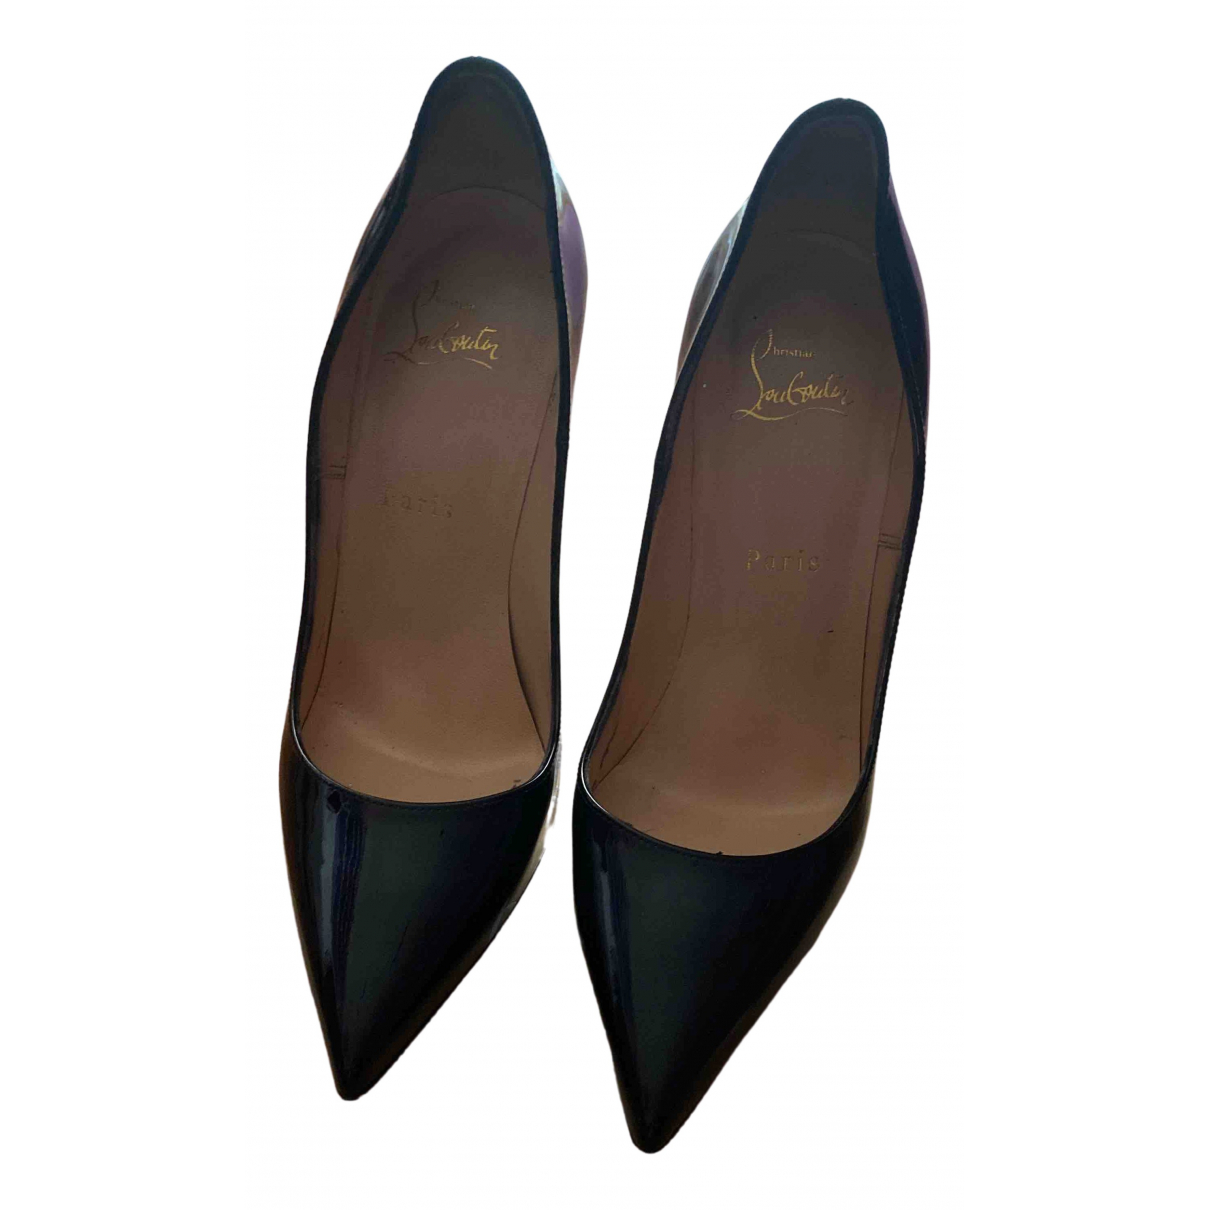 Christian Louboutin Pigalle Black Patent leather Heels for Women 38.5 EU